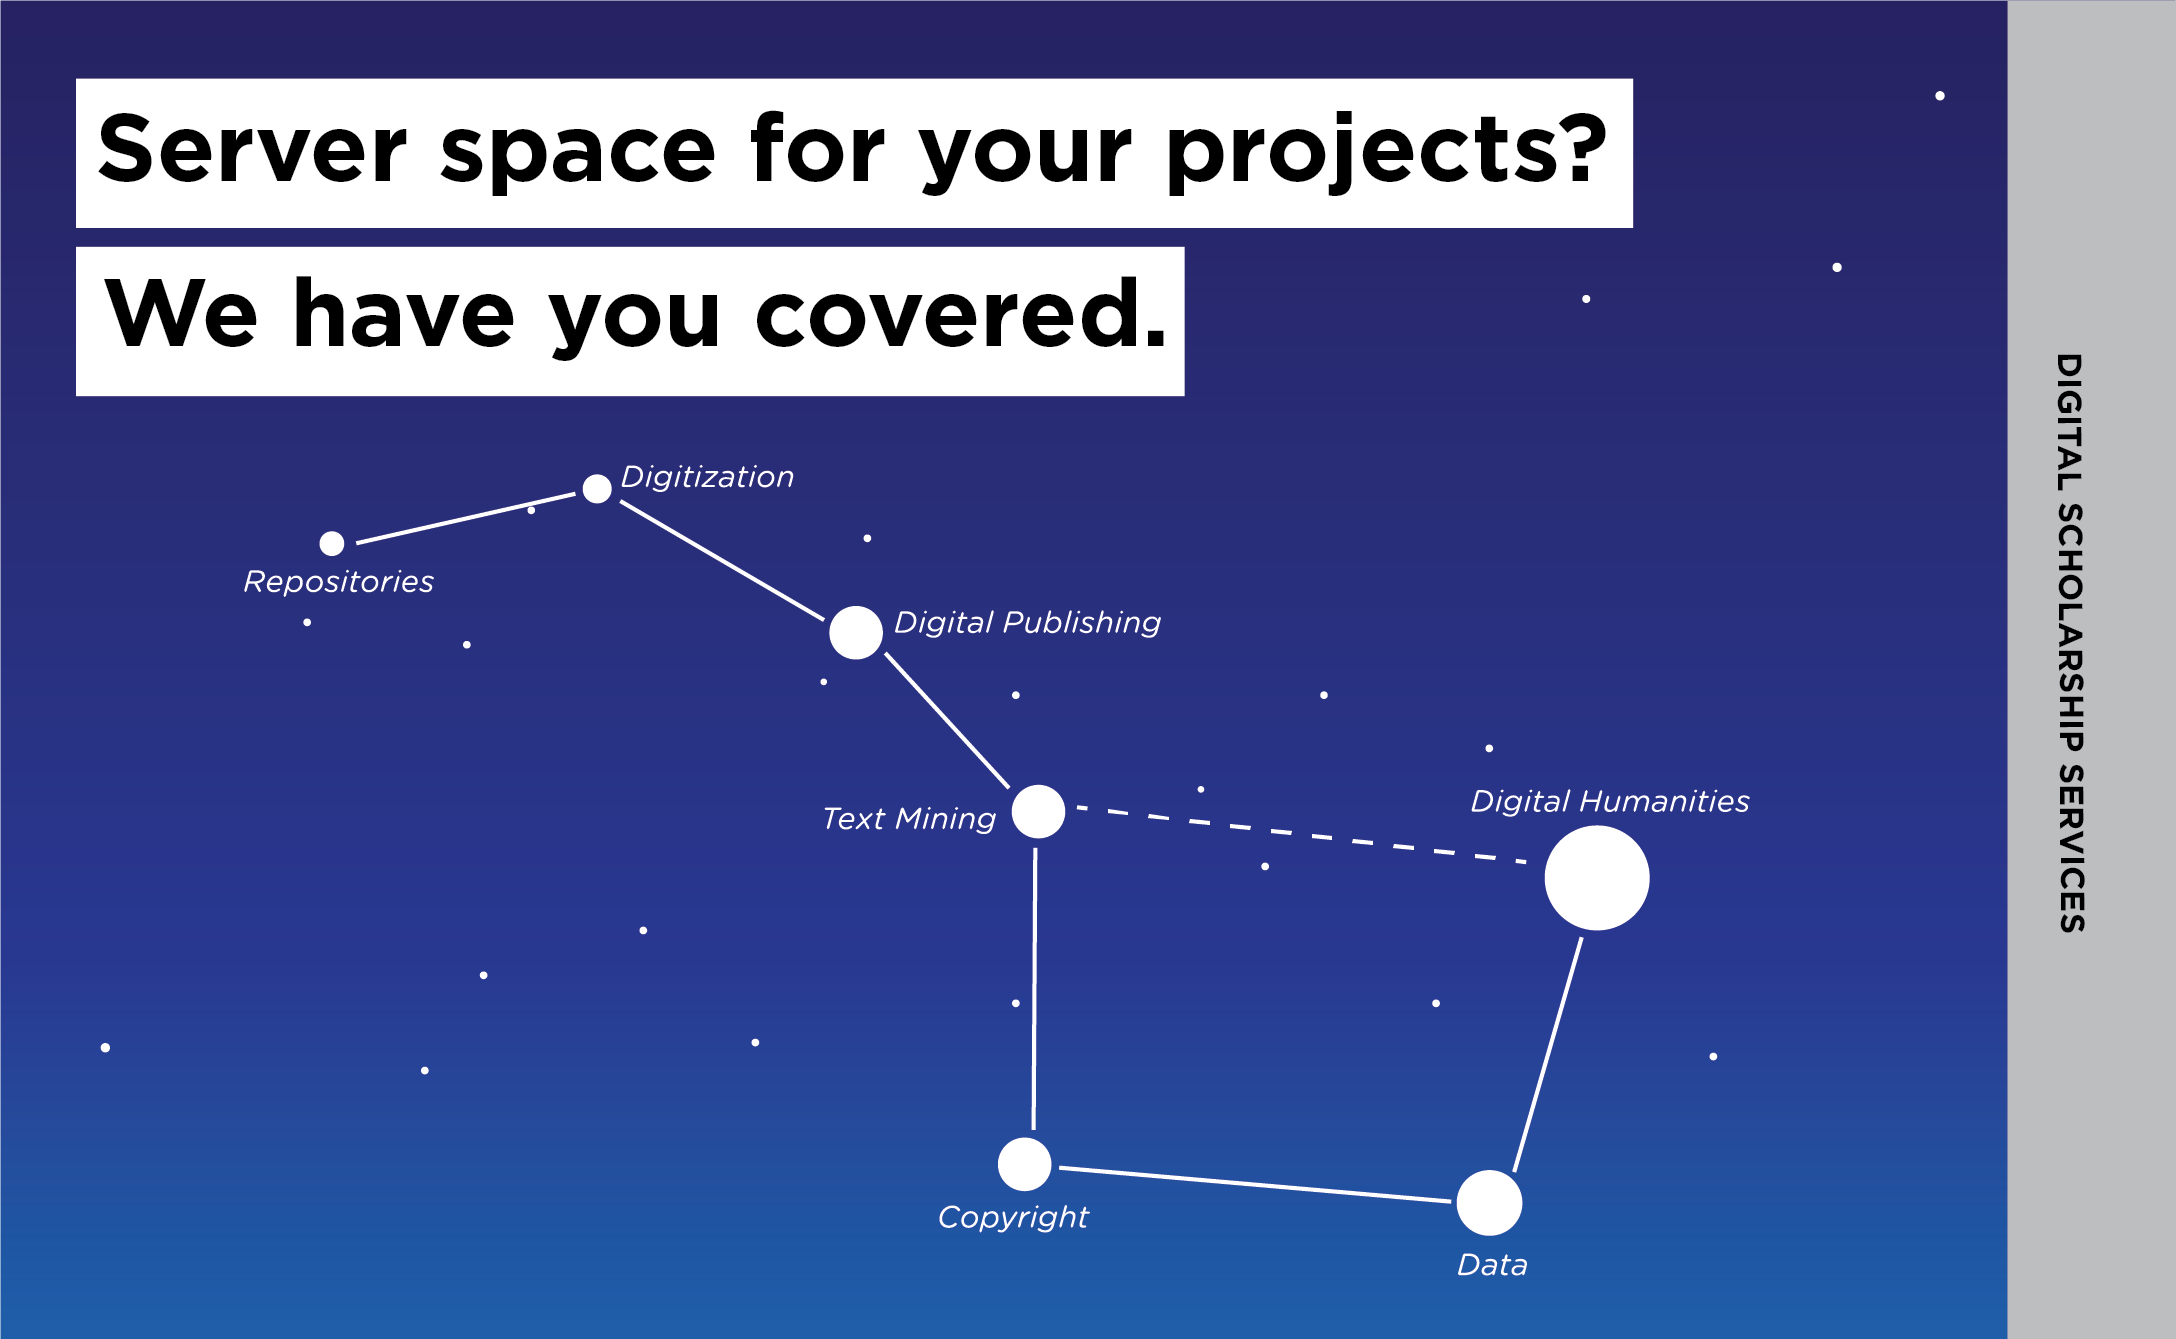 Need server space for your projects? We have you covered through Digital Scholarship Services.